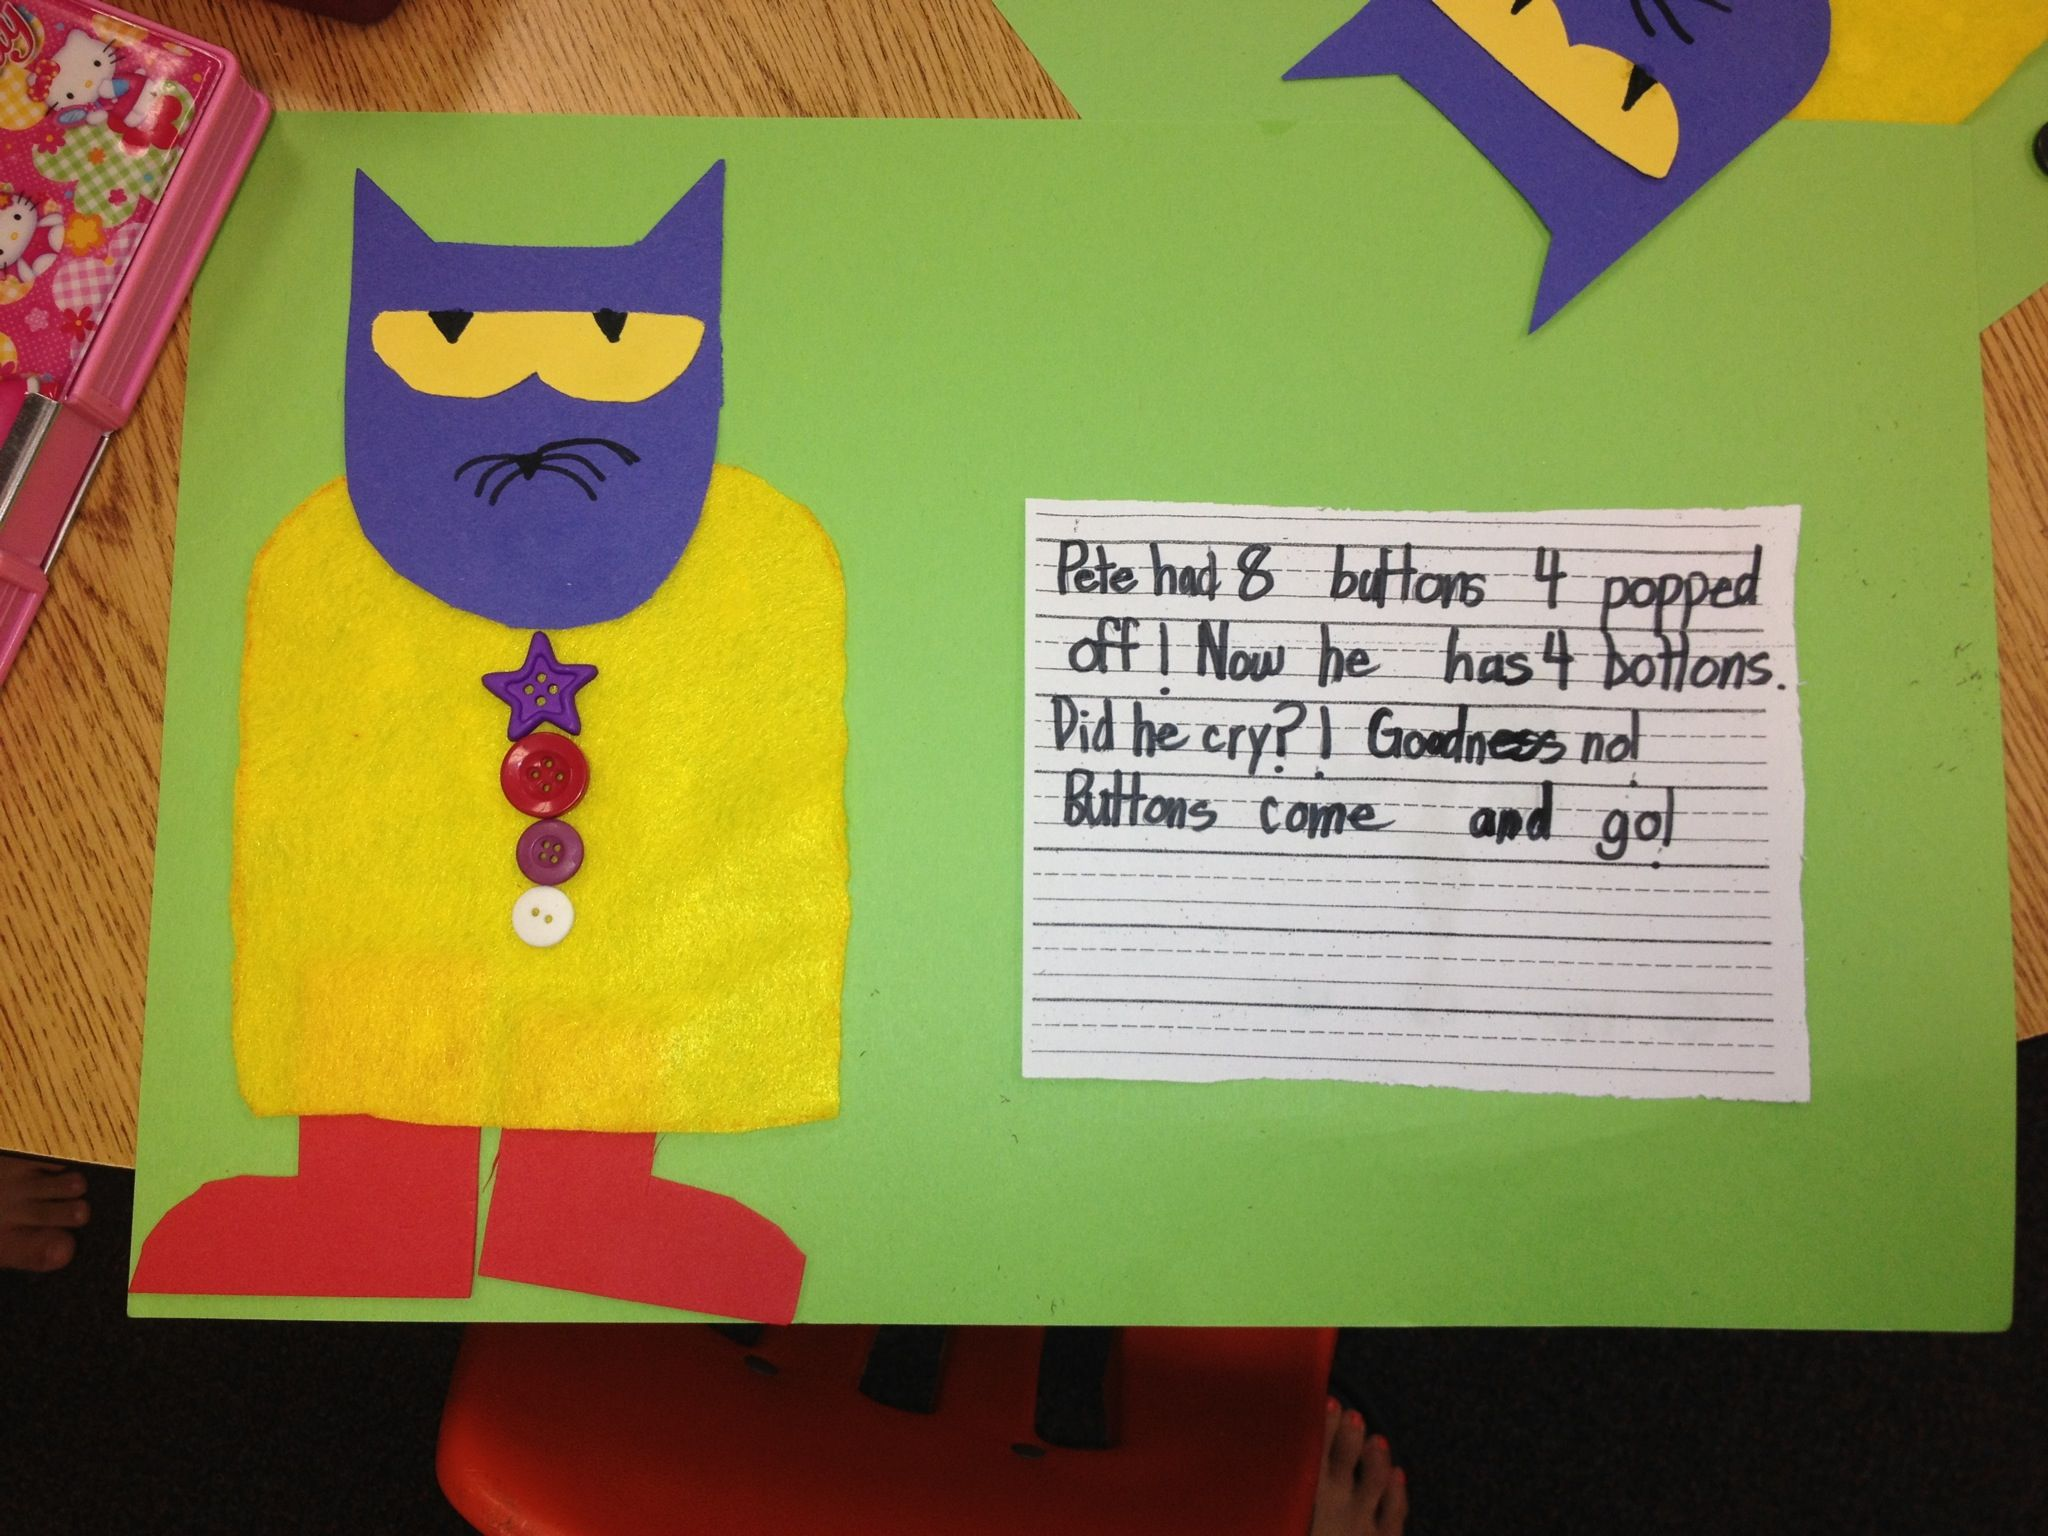 Pete The Cat Did He Cry Goodness No